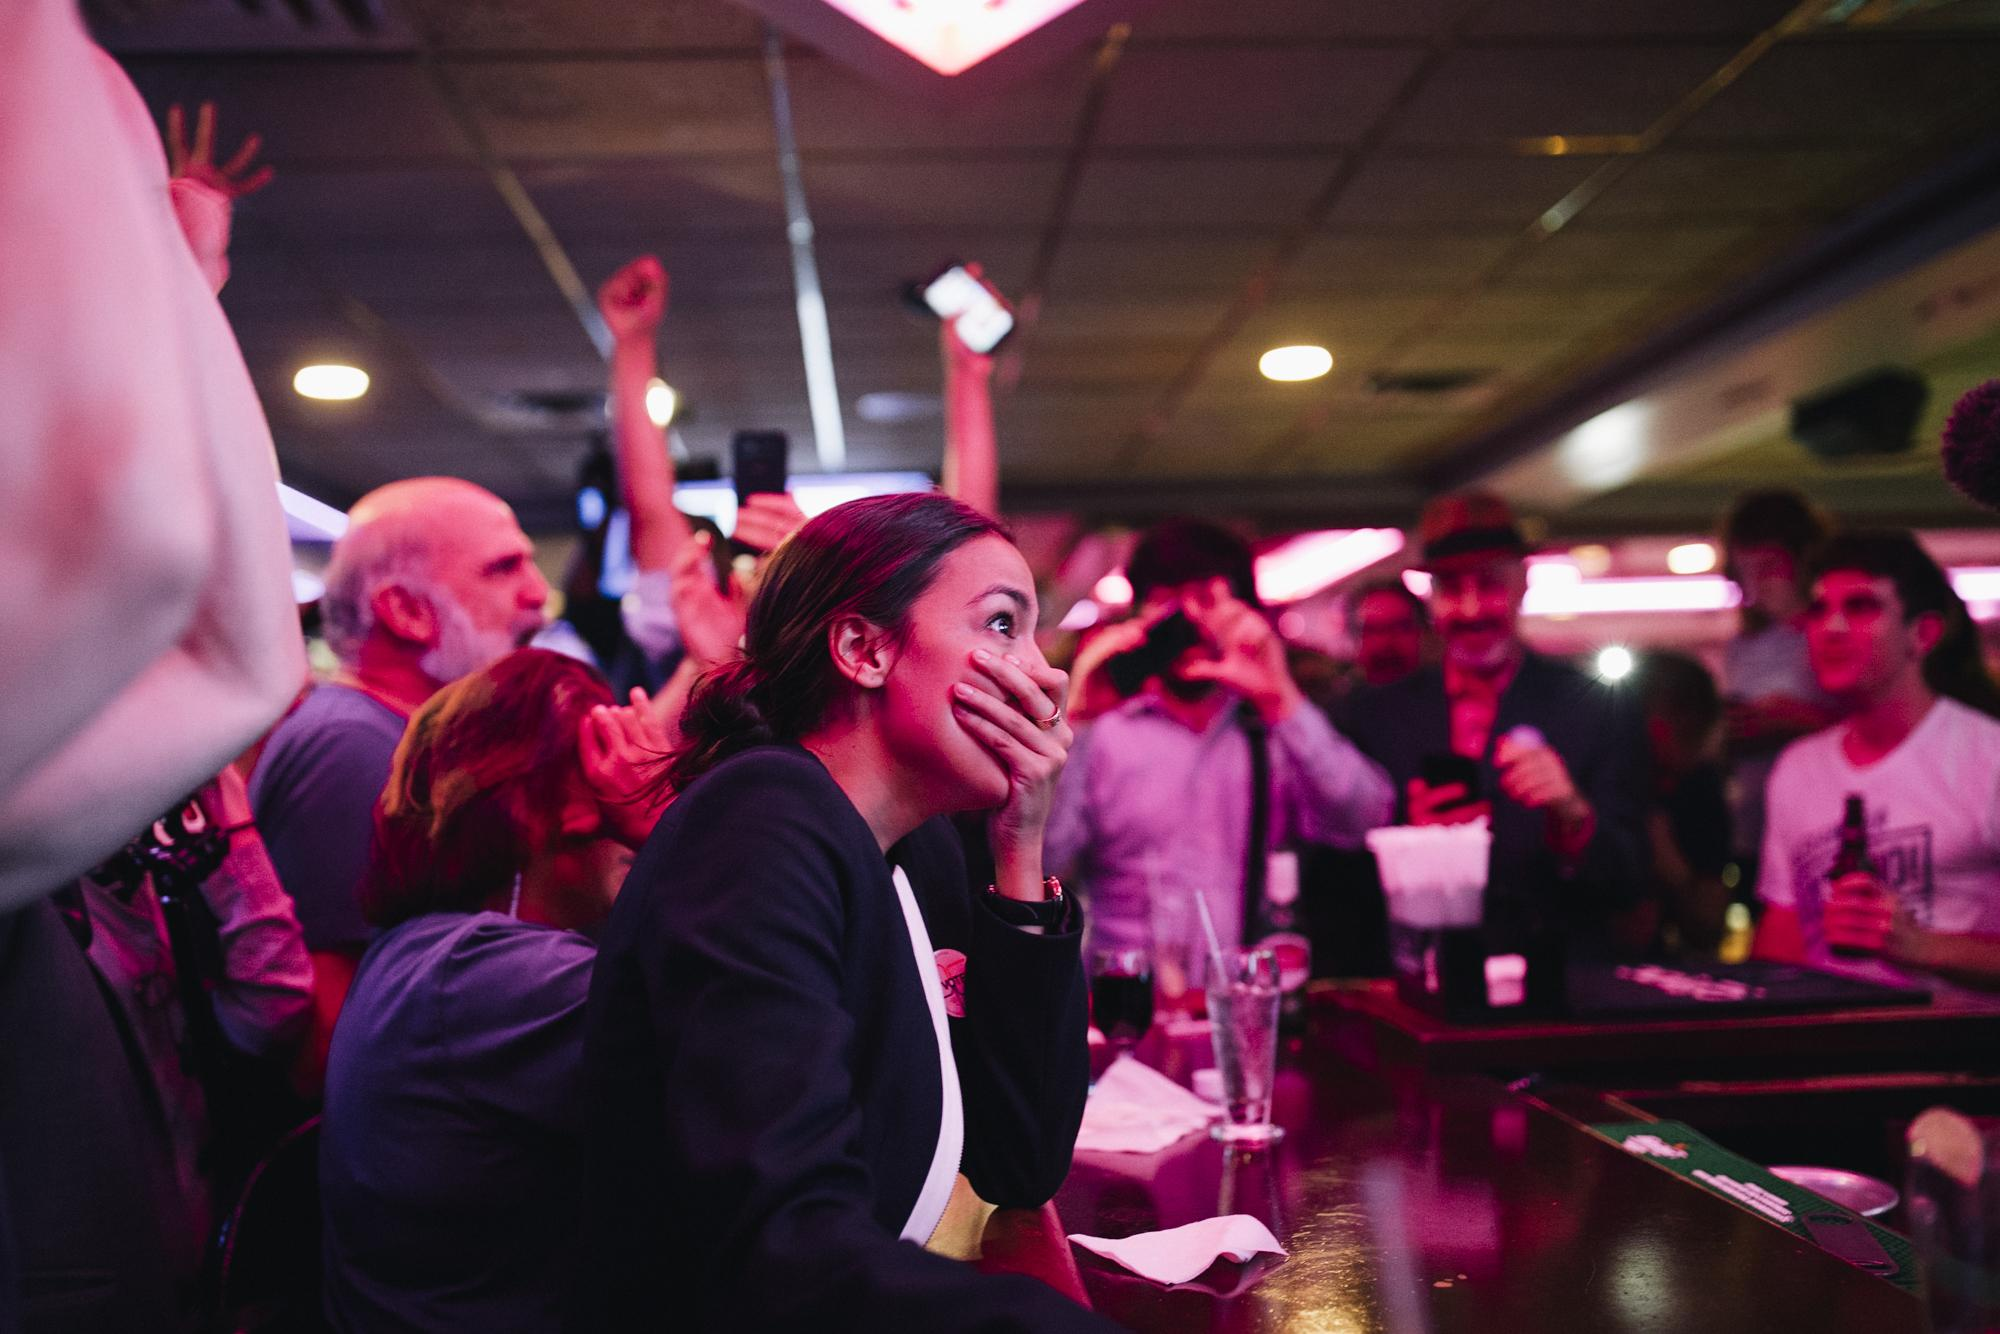 Roars erupt into the air at the Park Billiards Cafe and Sports Bar as congressional candidate Alexandria Ocasio-Cortez officially won the NY-14 primary against incumbent and Democratic party heavyweight, Joseph Crowley, in The Bronx borough of New York City, June 26, 2018.